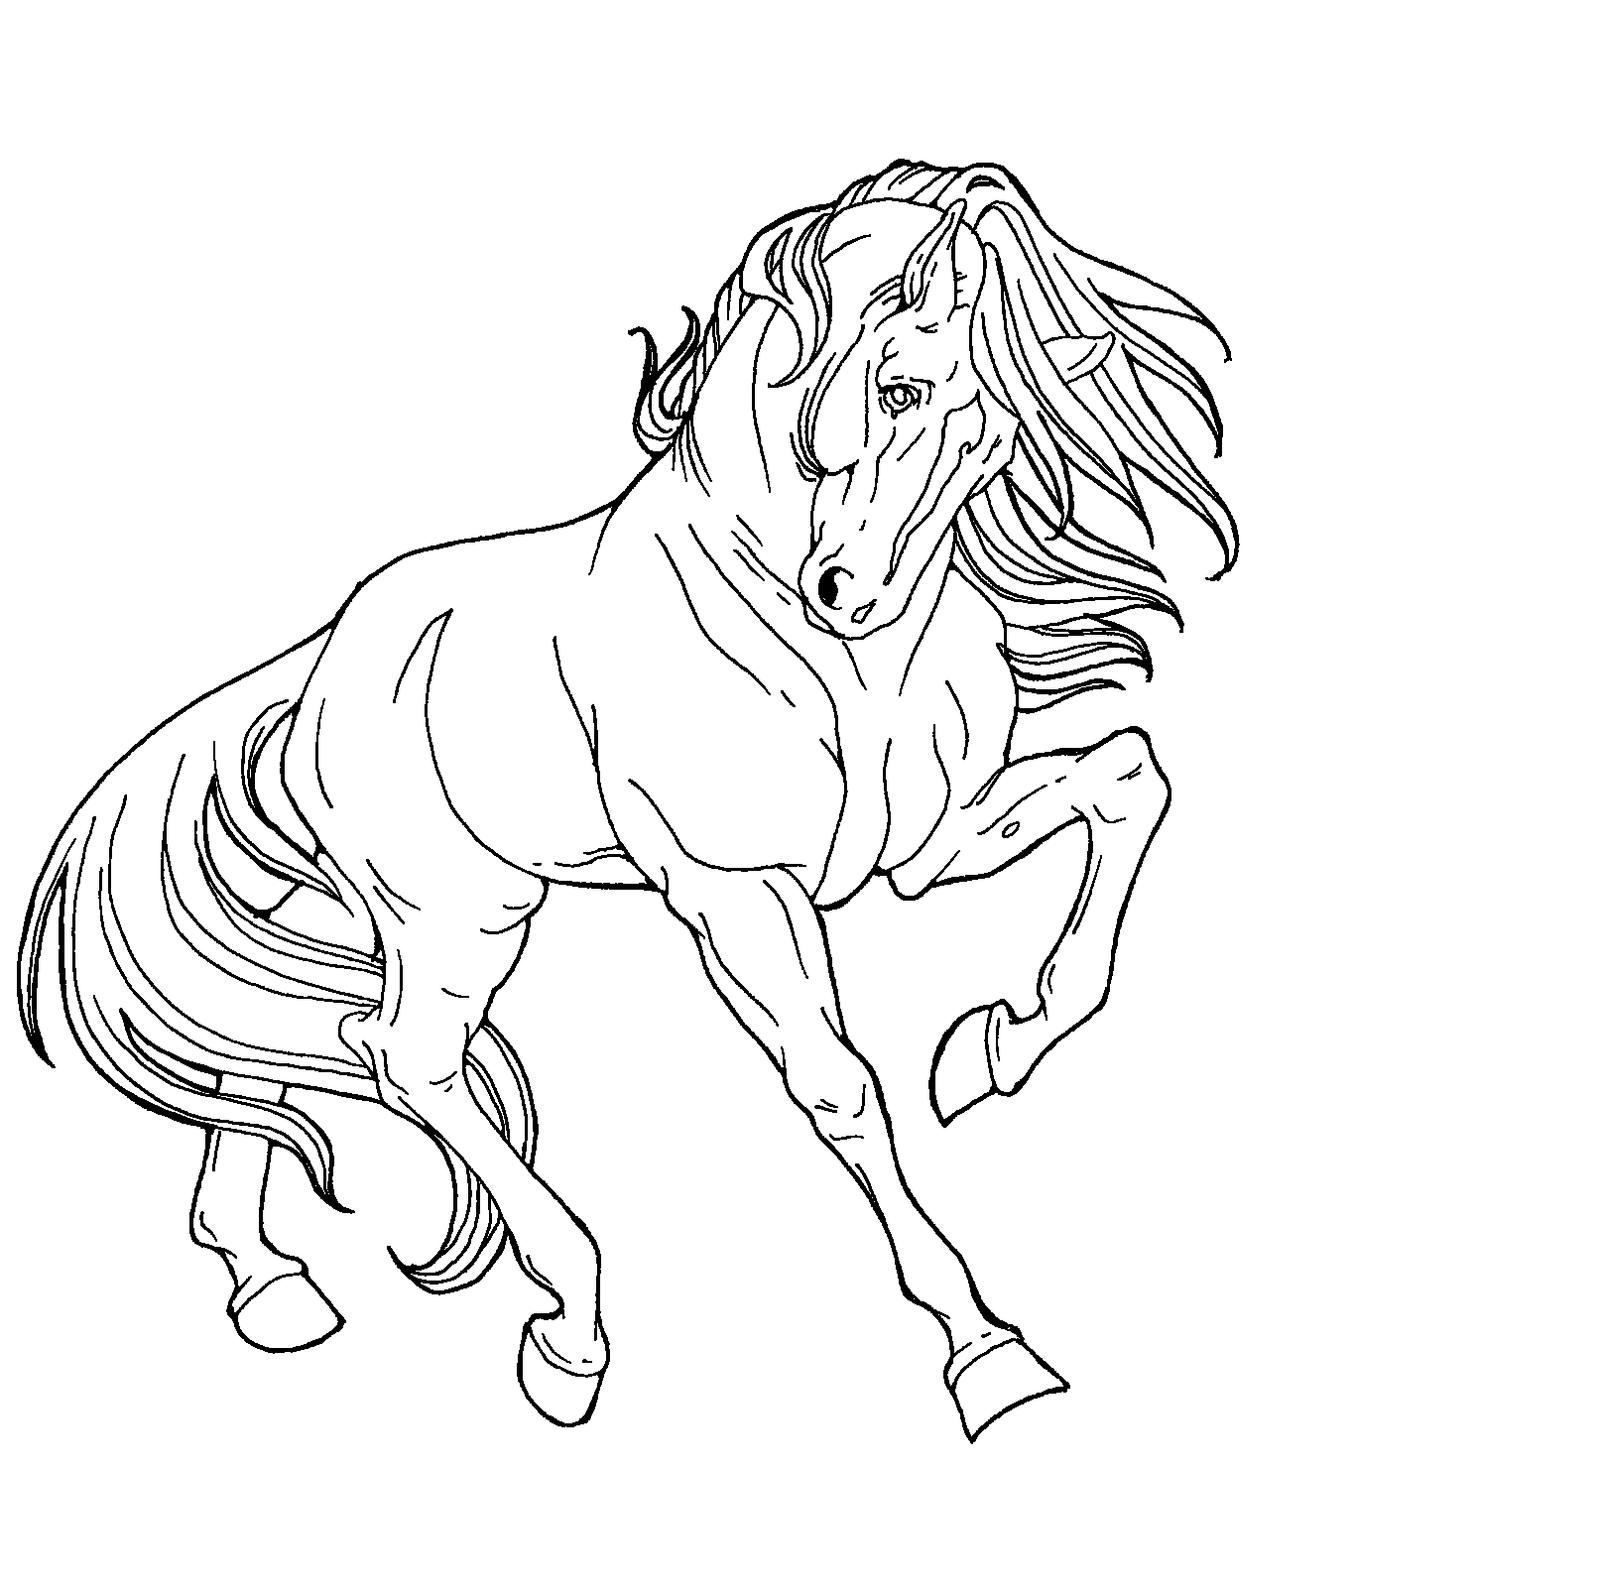 Line Art Free : Free line art proud horse by applehunter on deviantart